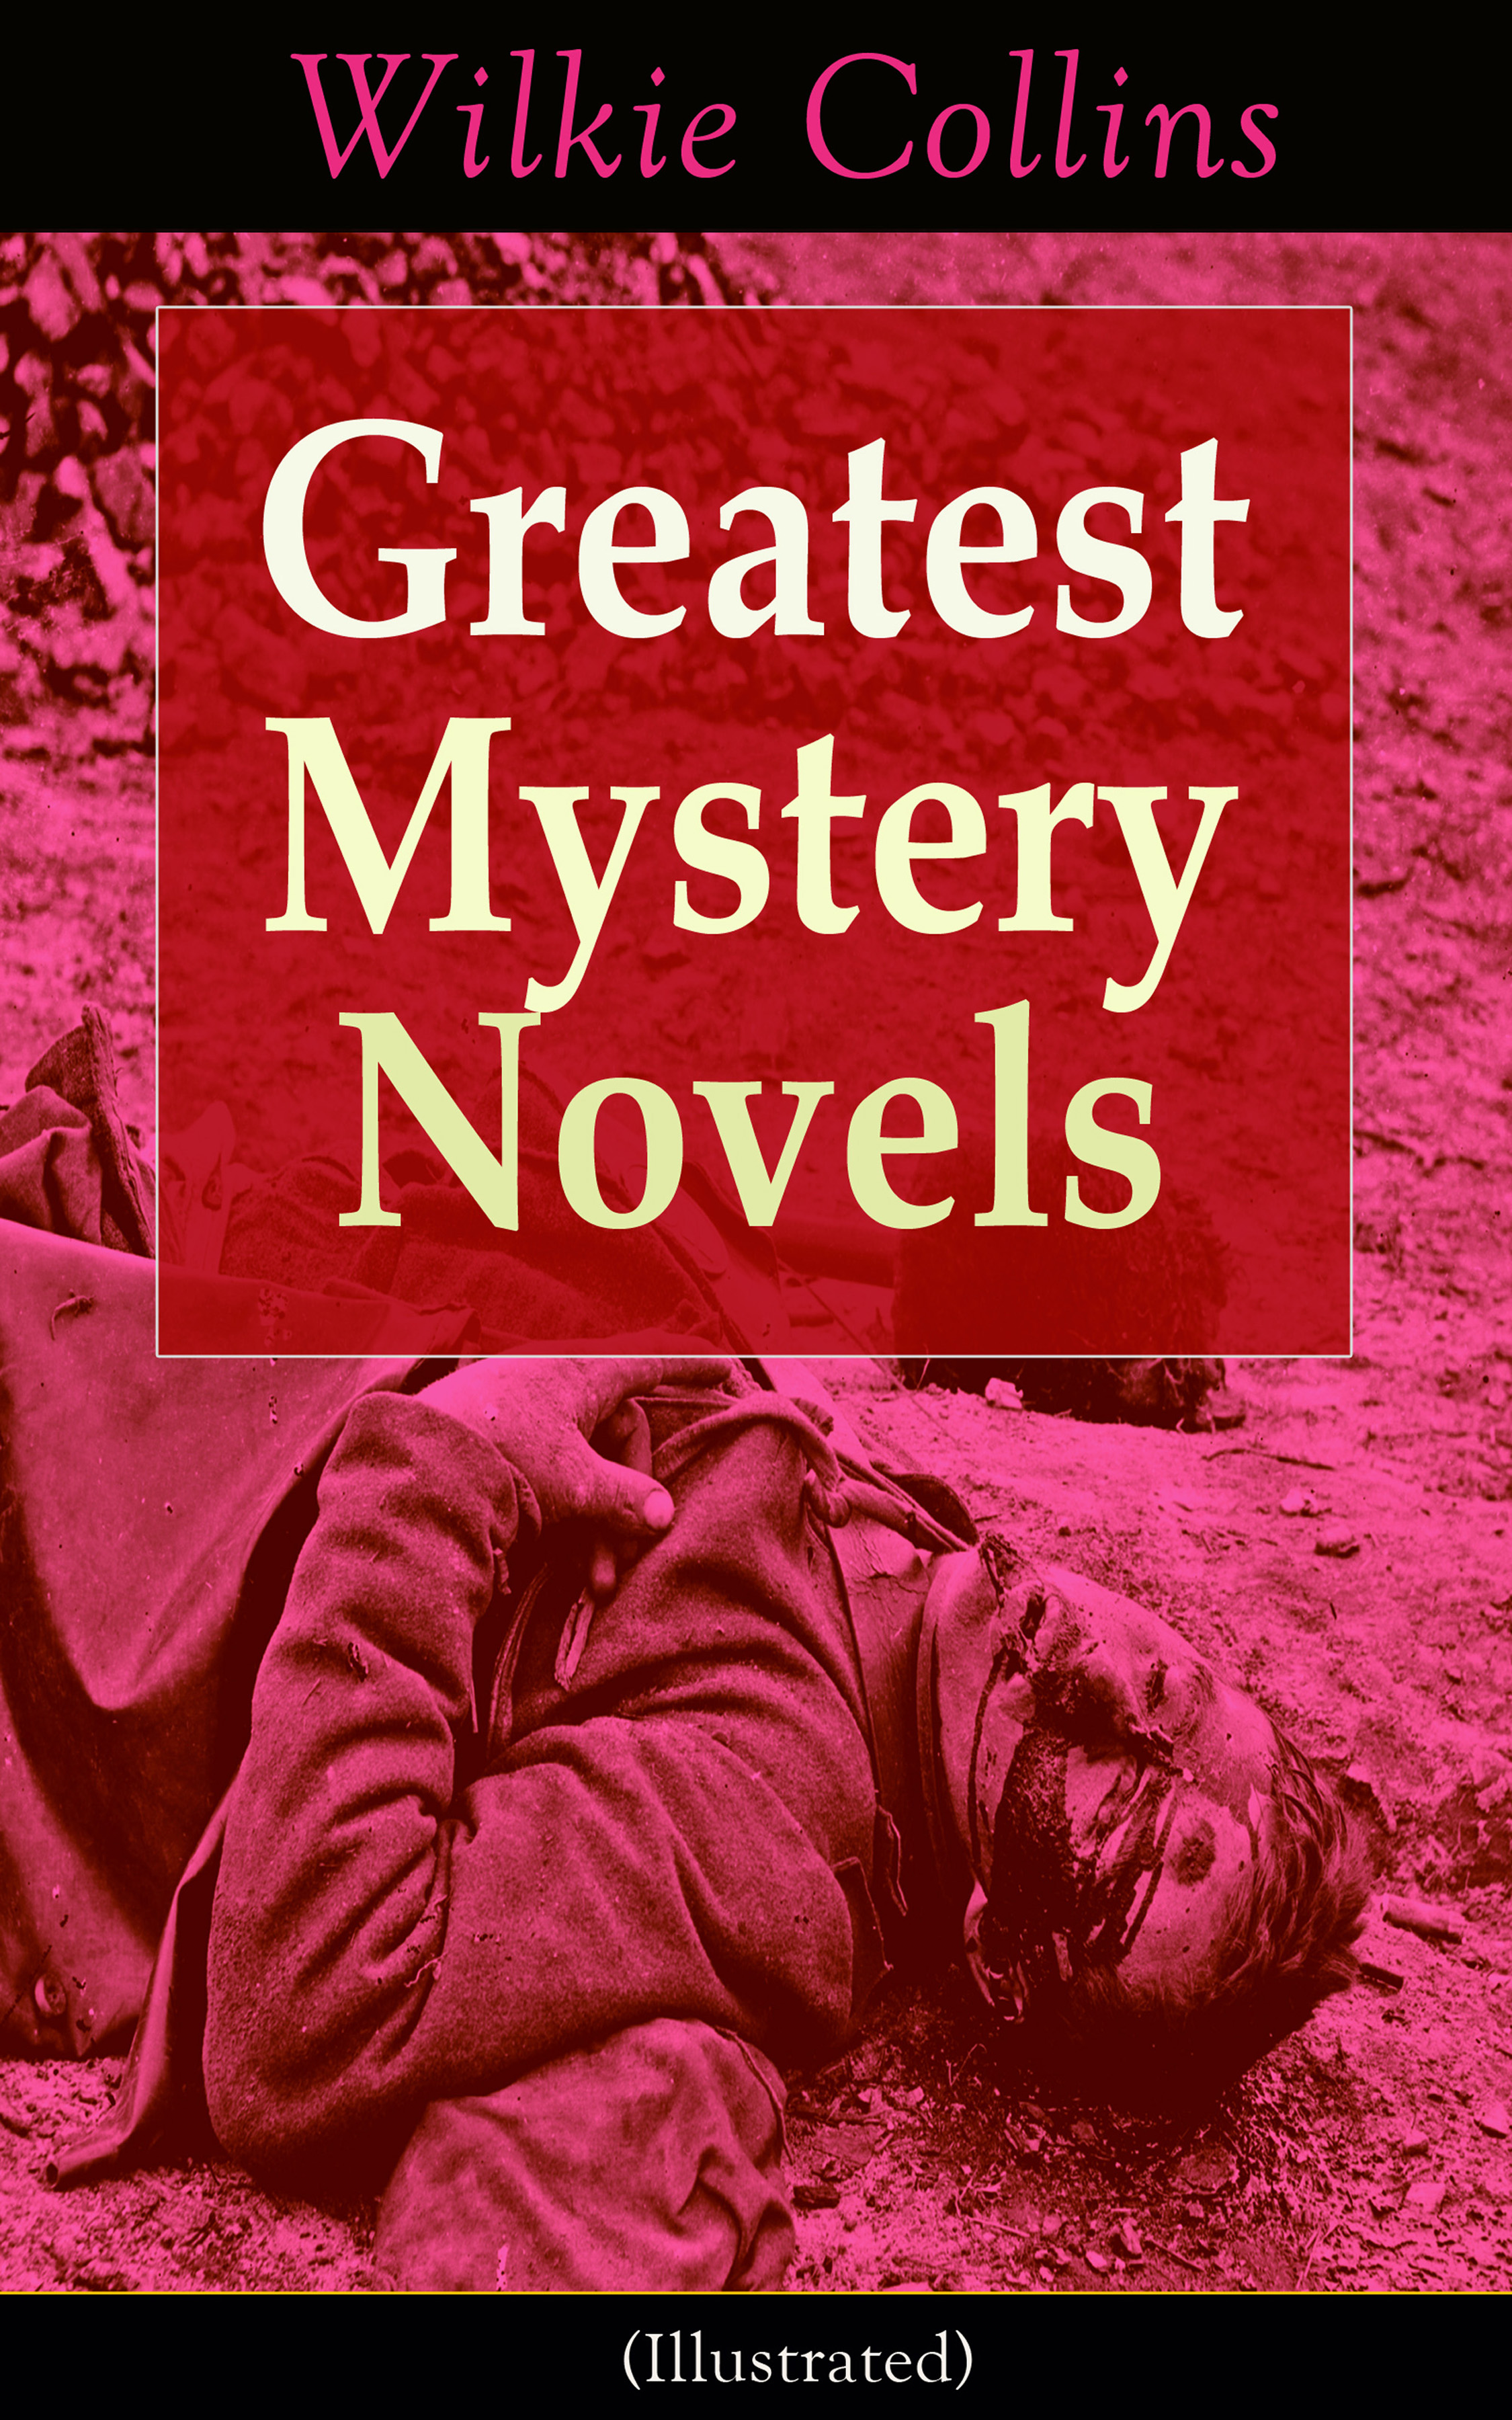 Greatest Mystery Novels of Wilkie Collins (Illustrated): Thriller Classics: The Woman in White, No Name, Armadale, The Moonstone, The Haunted Hotel: A Mystery of Modern Venice, The Law and The Lady, The Dead Secret, Miss or Mrs?